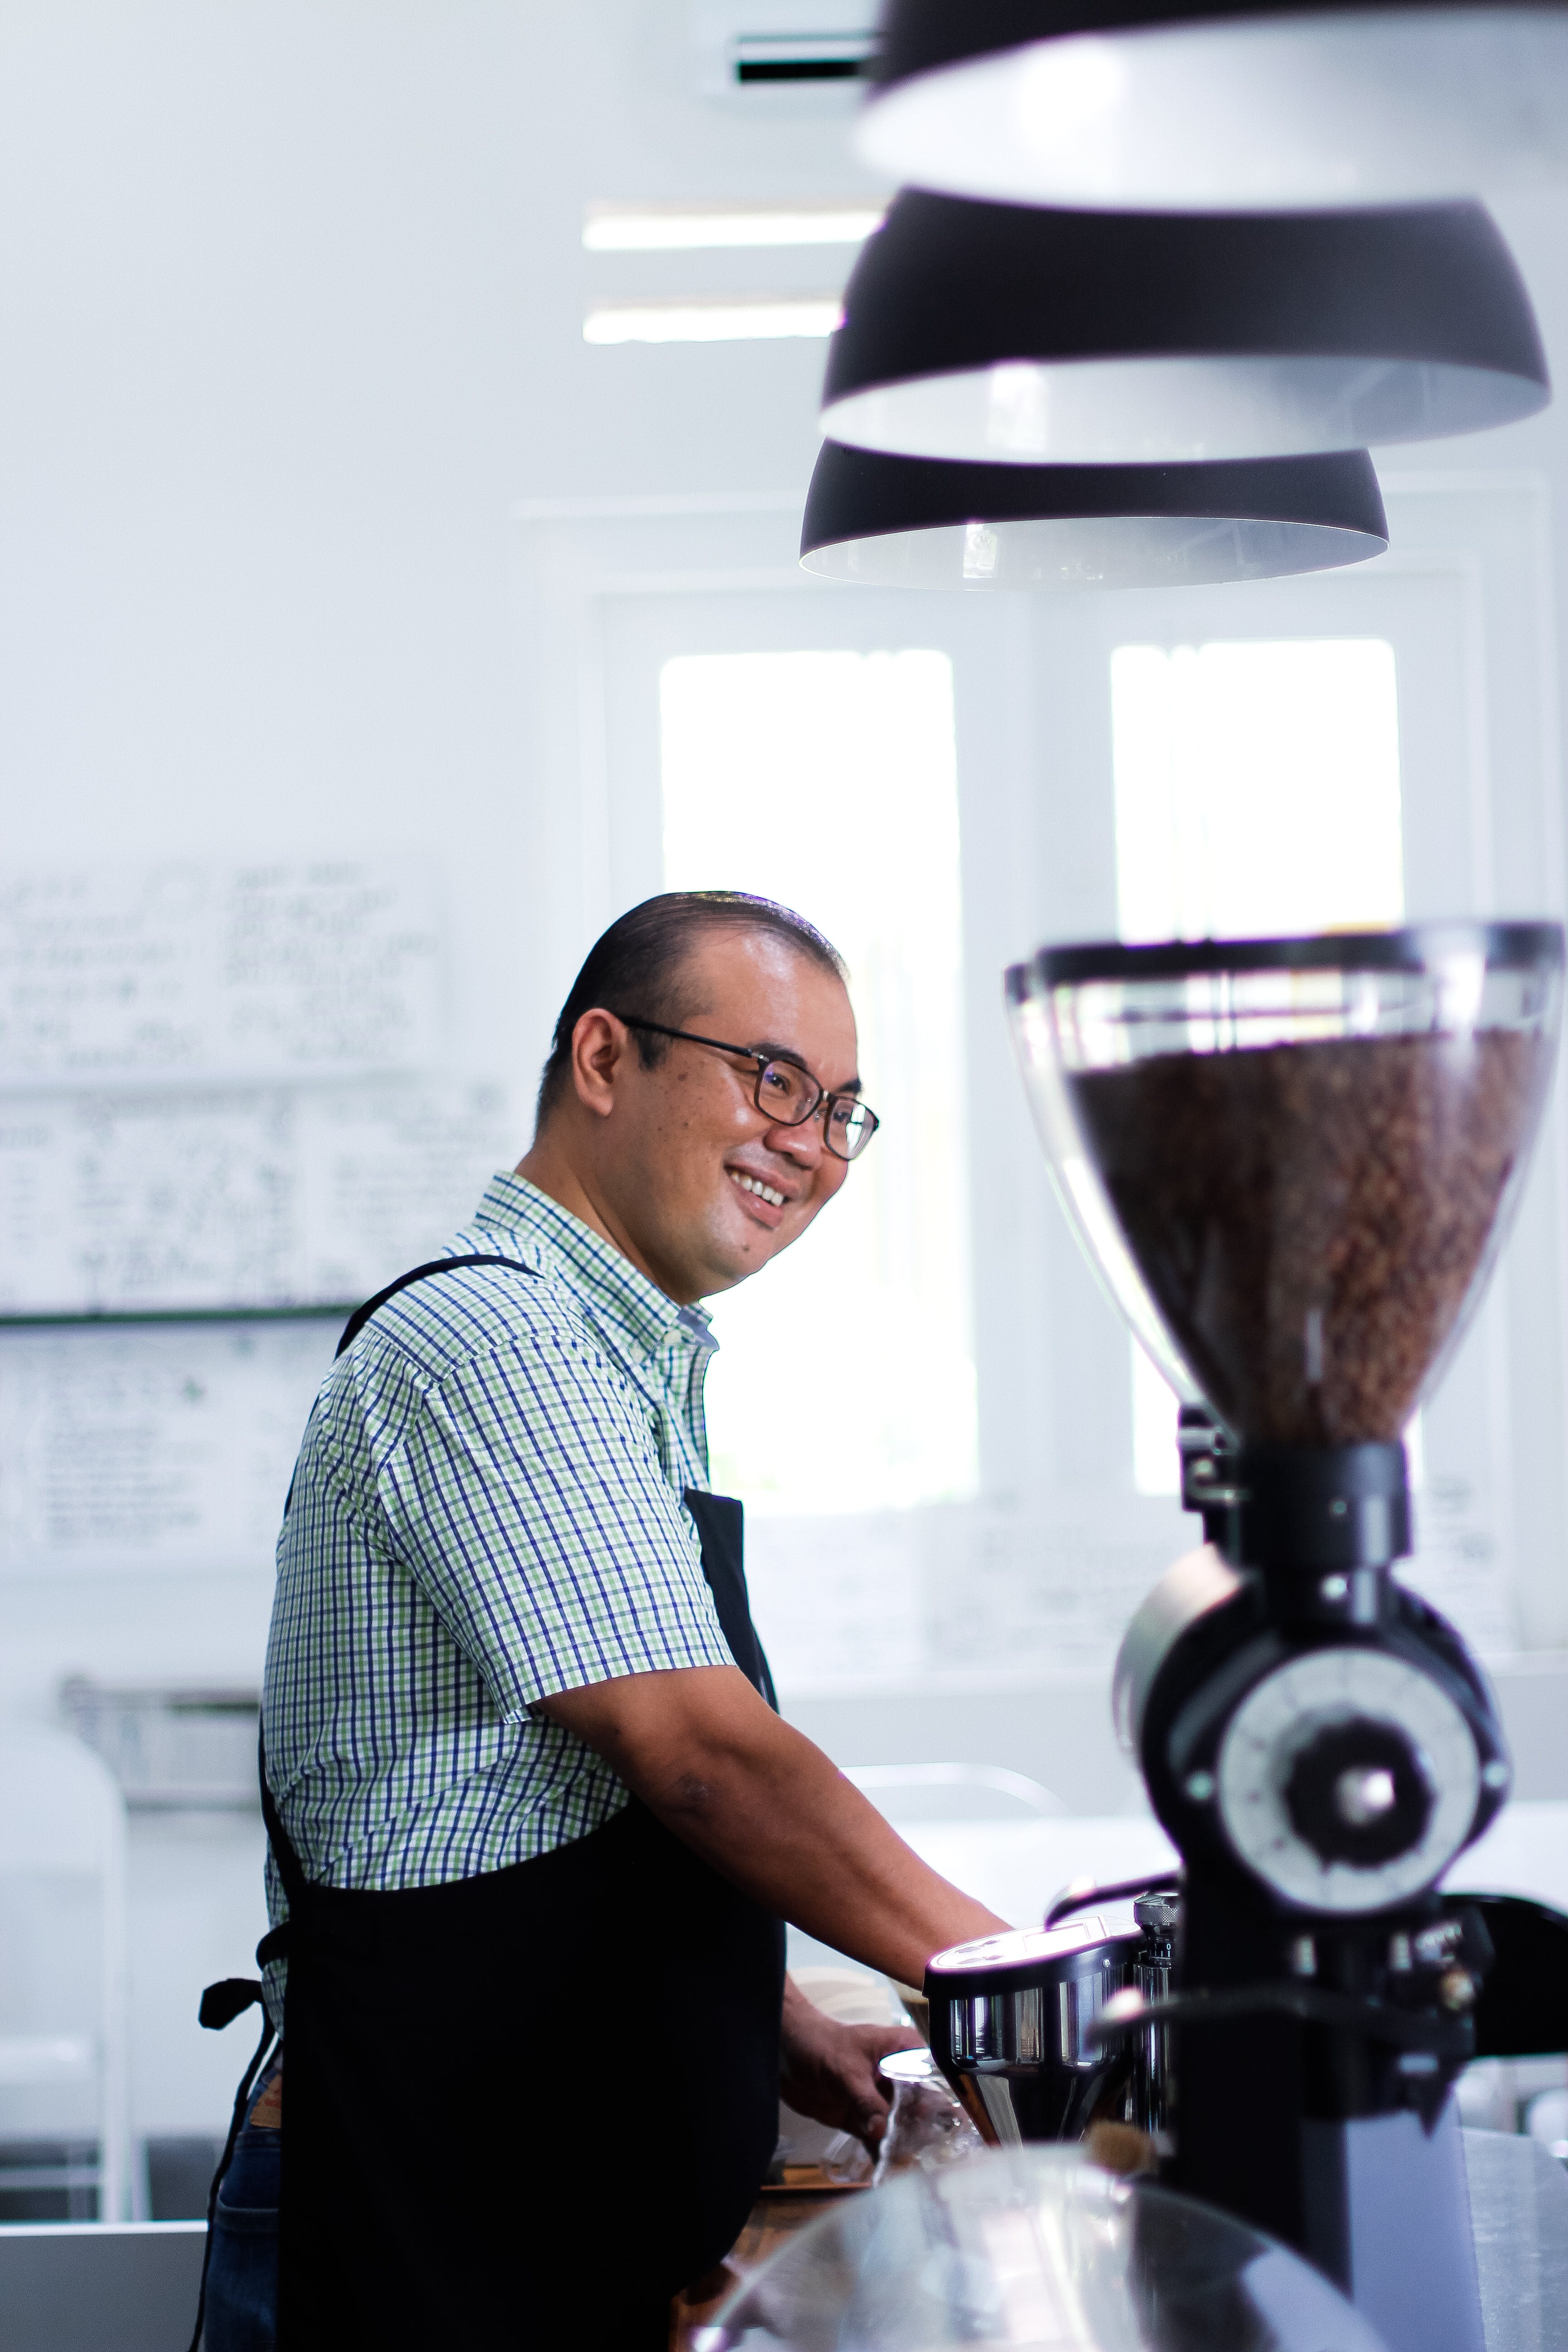 Man Wearing Plaid T-shirt And Black Apron in Front of Coffeemaker